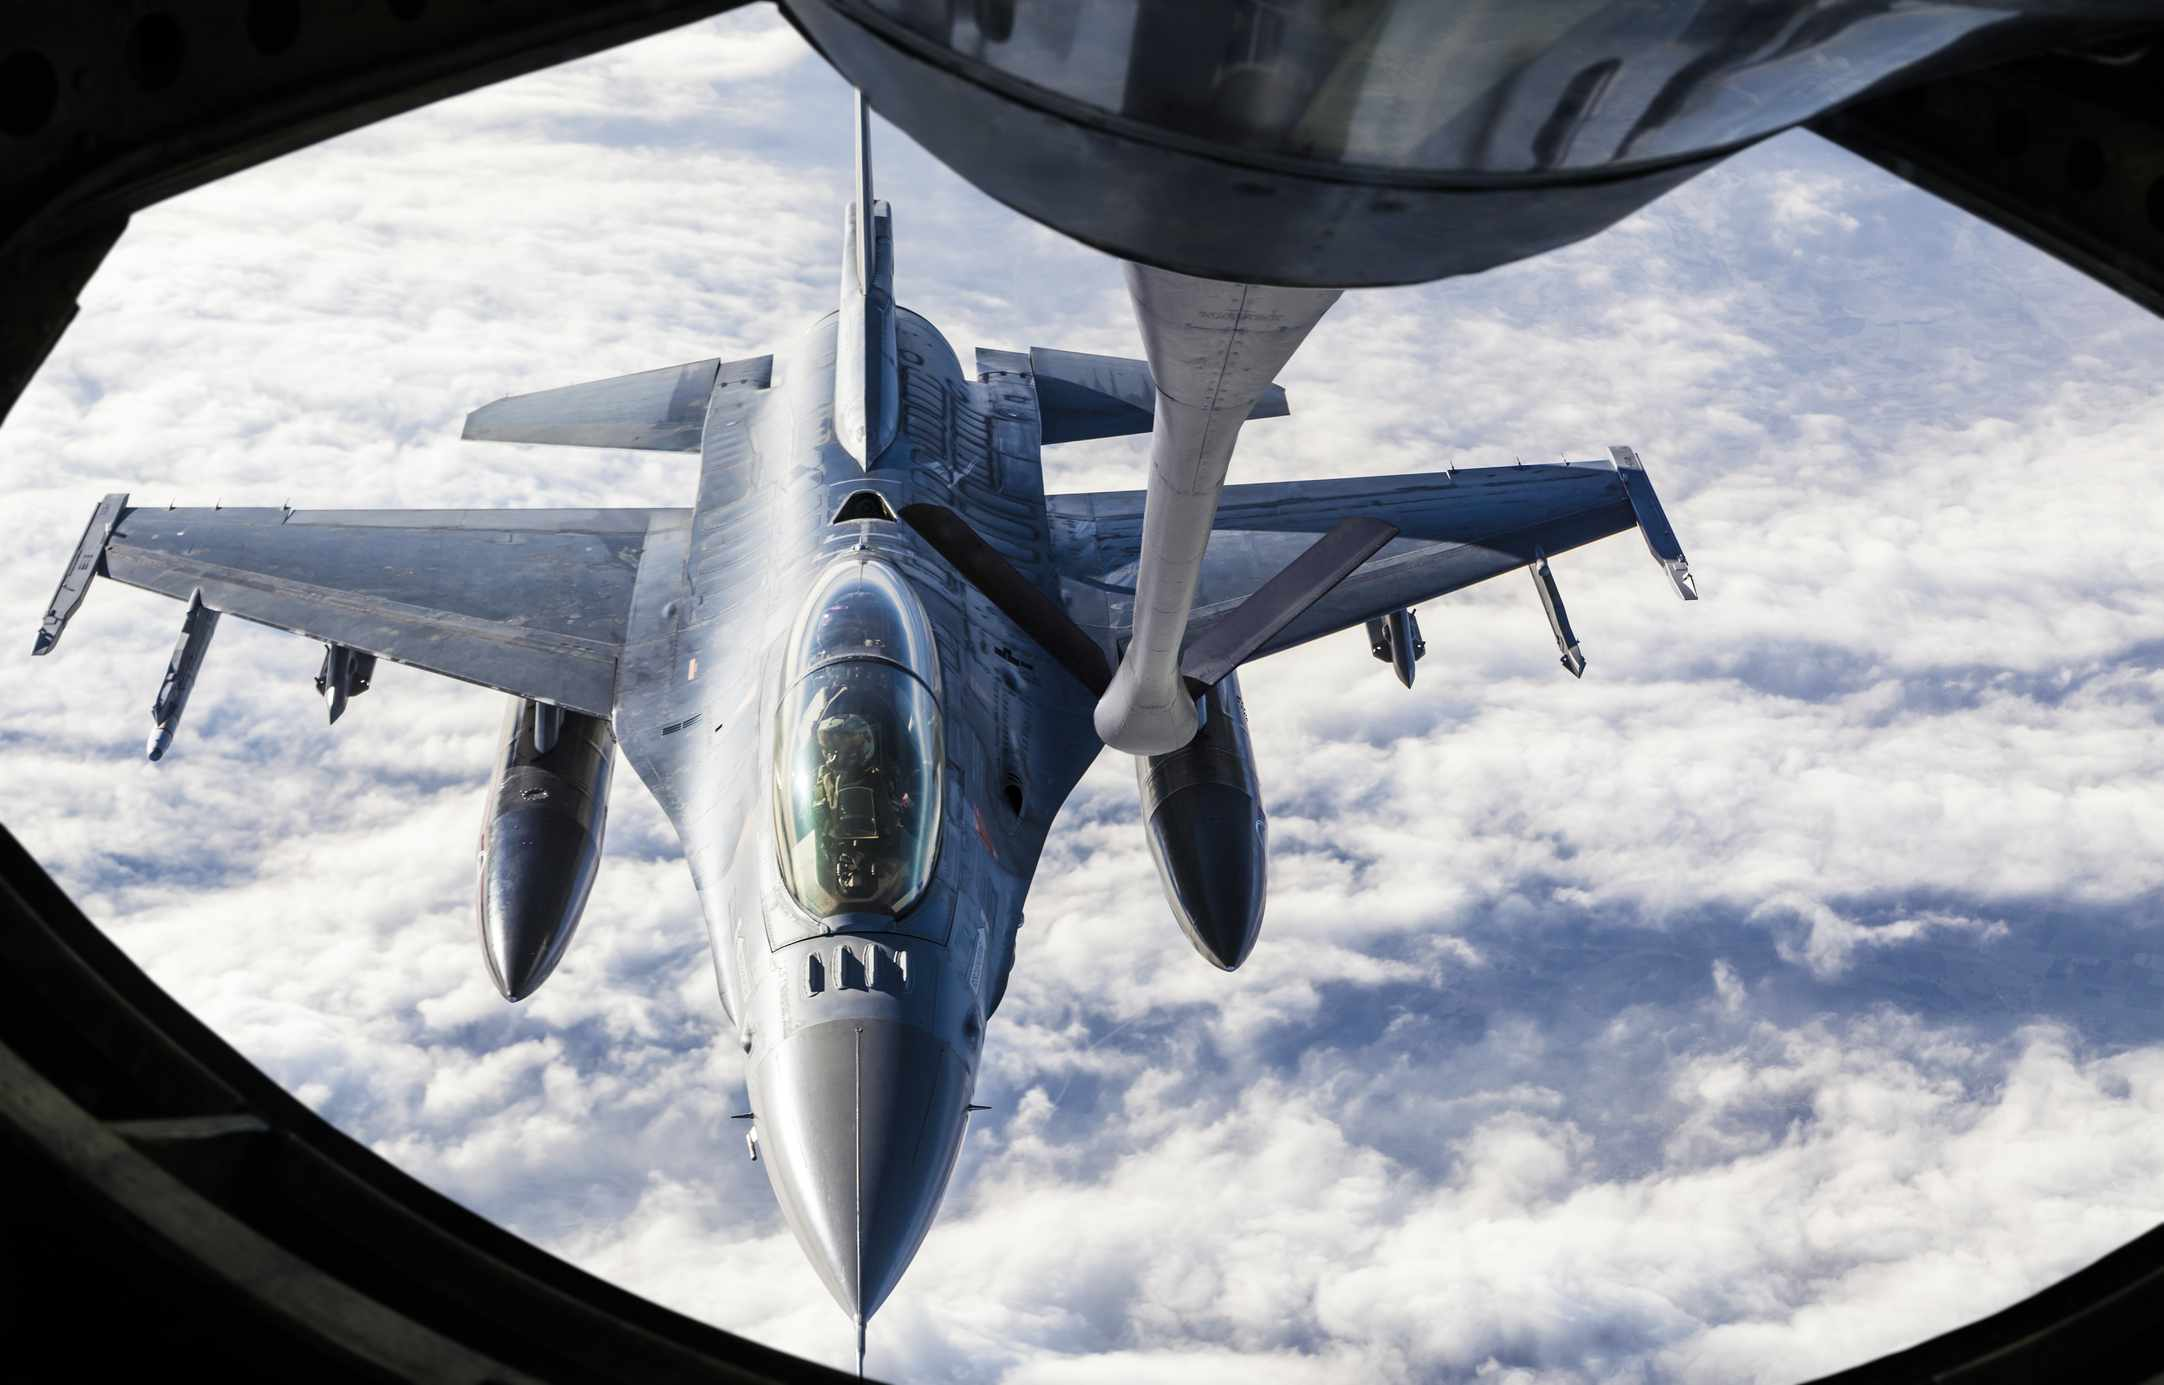 A fighter jet closing in on the refueling nozzle from a tanker in mid-air.